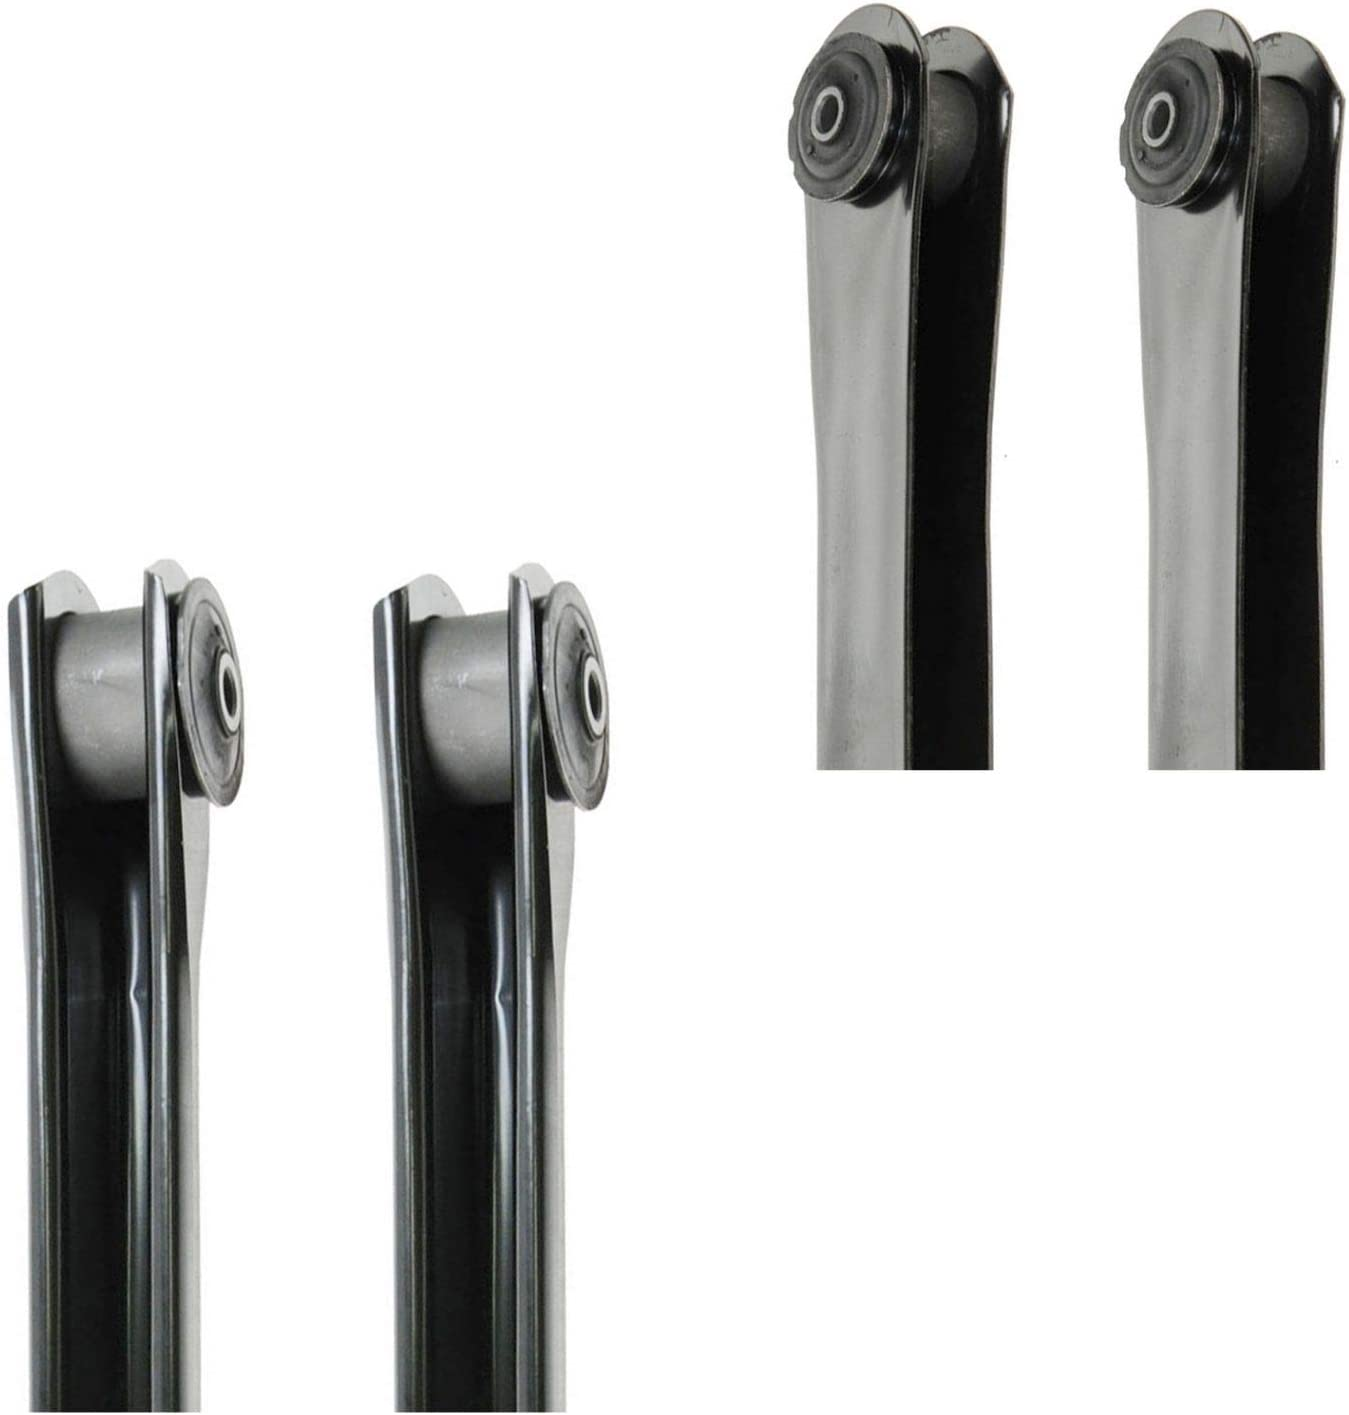 Front Control Arms Upper /& Lower Kit 4WD Suspension Set of 4 for 1994-1999 Dodge Ram 1500//1994-1997 2500 7500 GVW